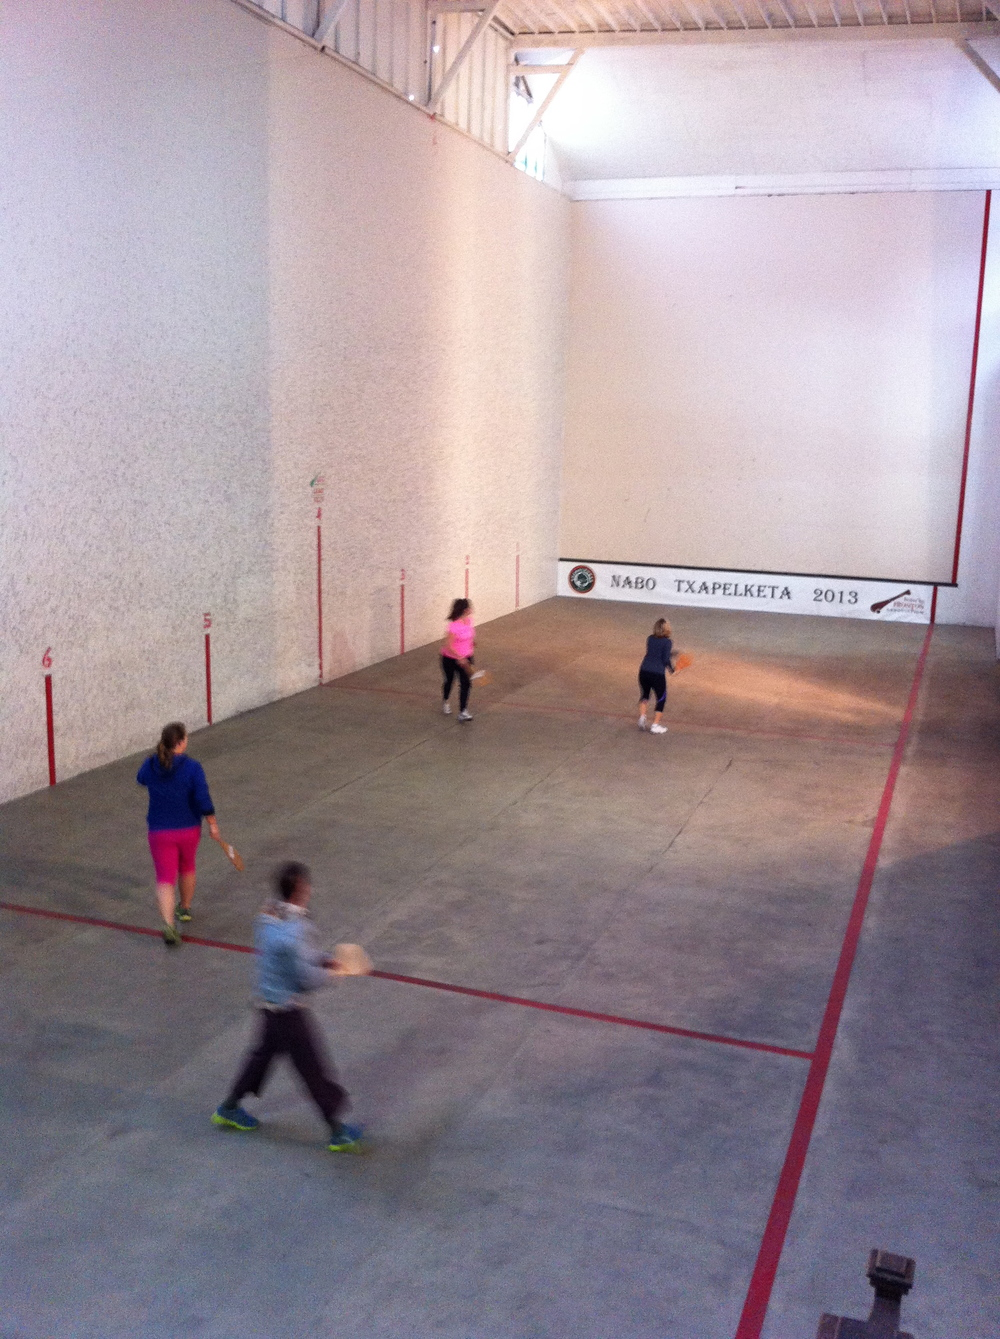 The Fronton Court.  Nobody asked me if I wanted to play. Darn!